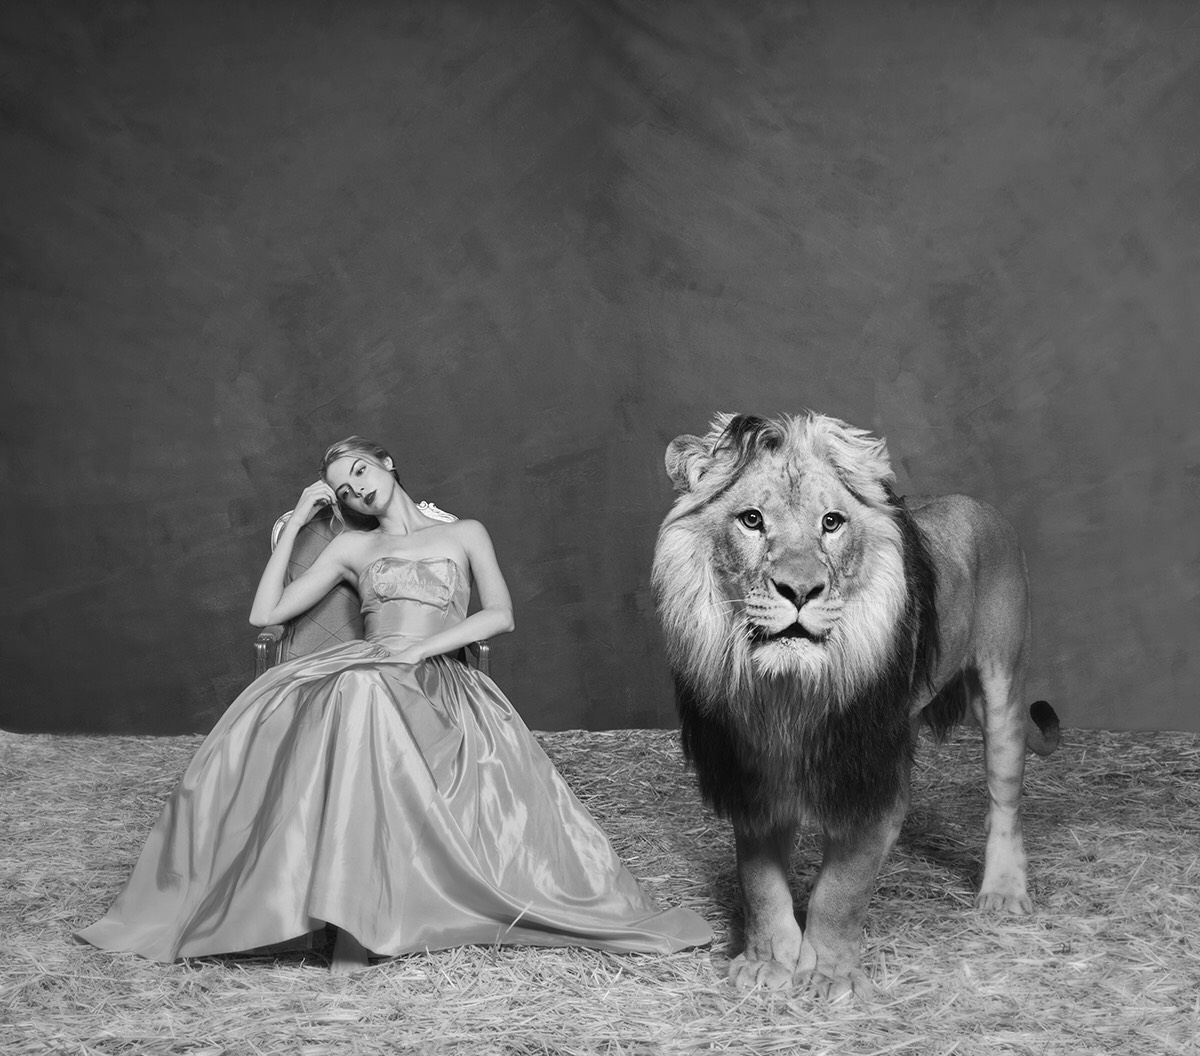 Tyler Shields. The Lady and the Lion, 2019